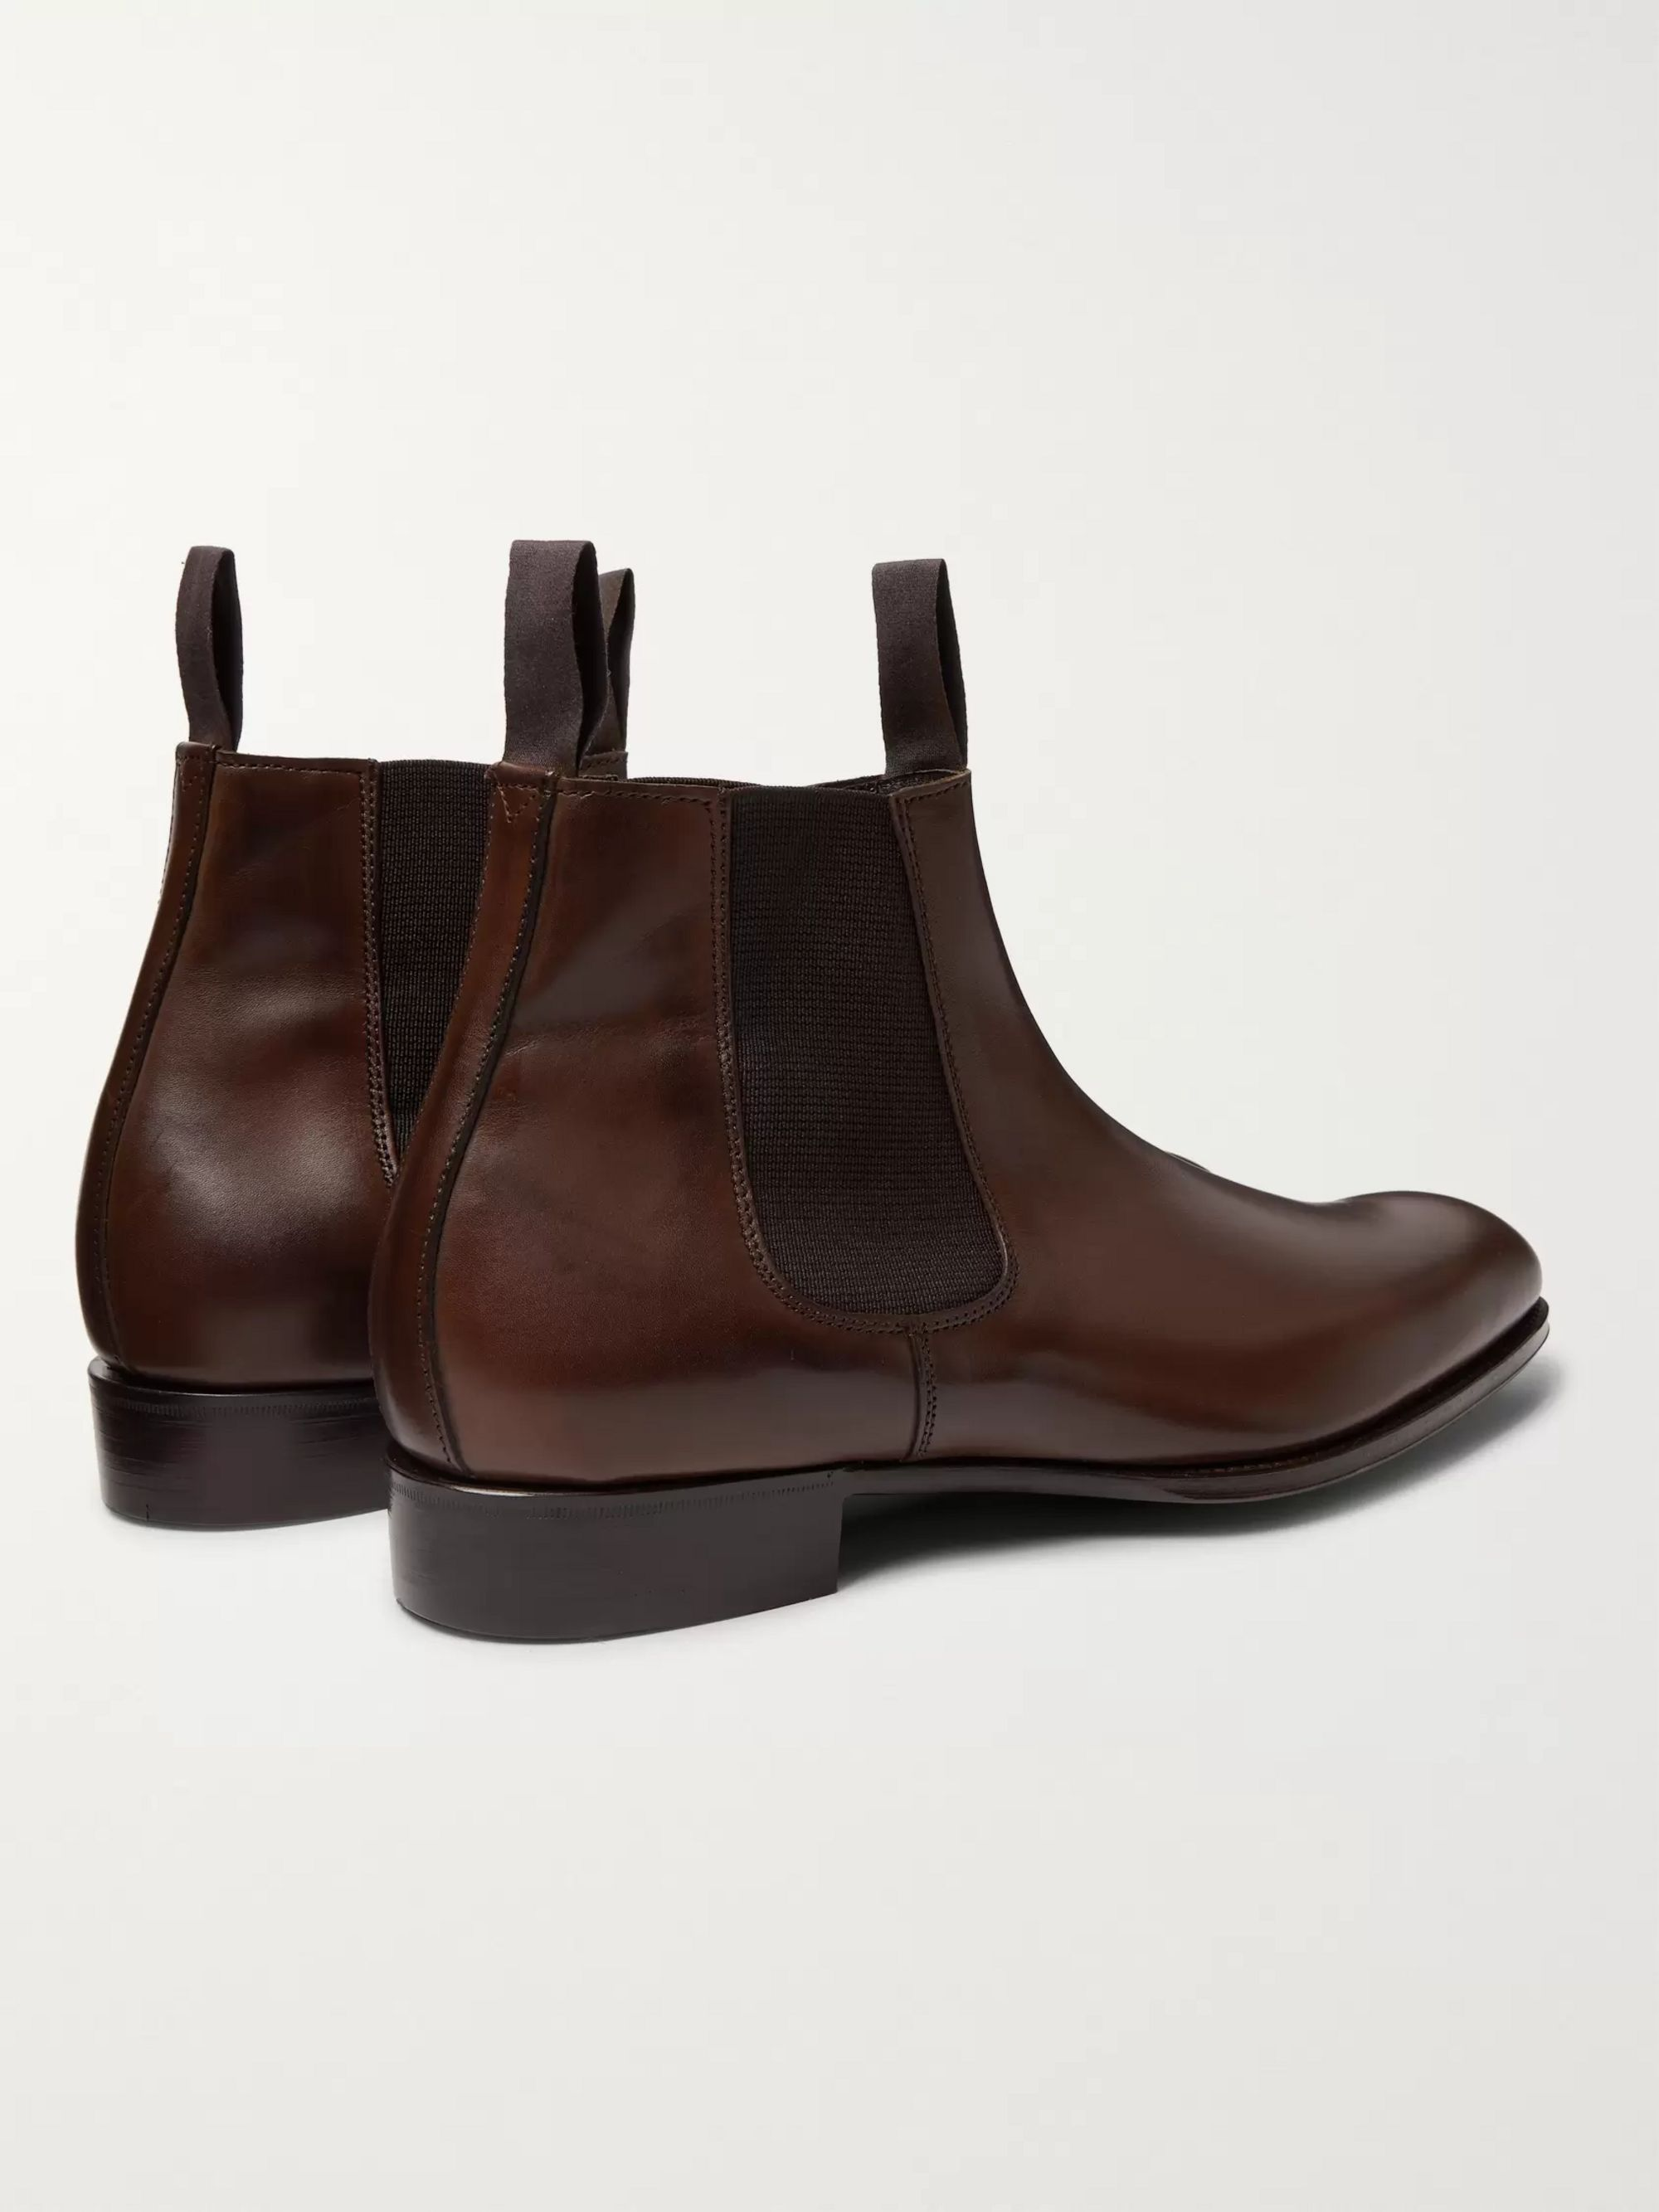 Kingsman + George Cleverley Leather Chelsea Boots